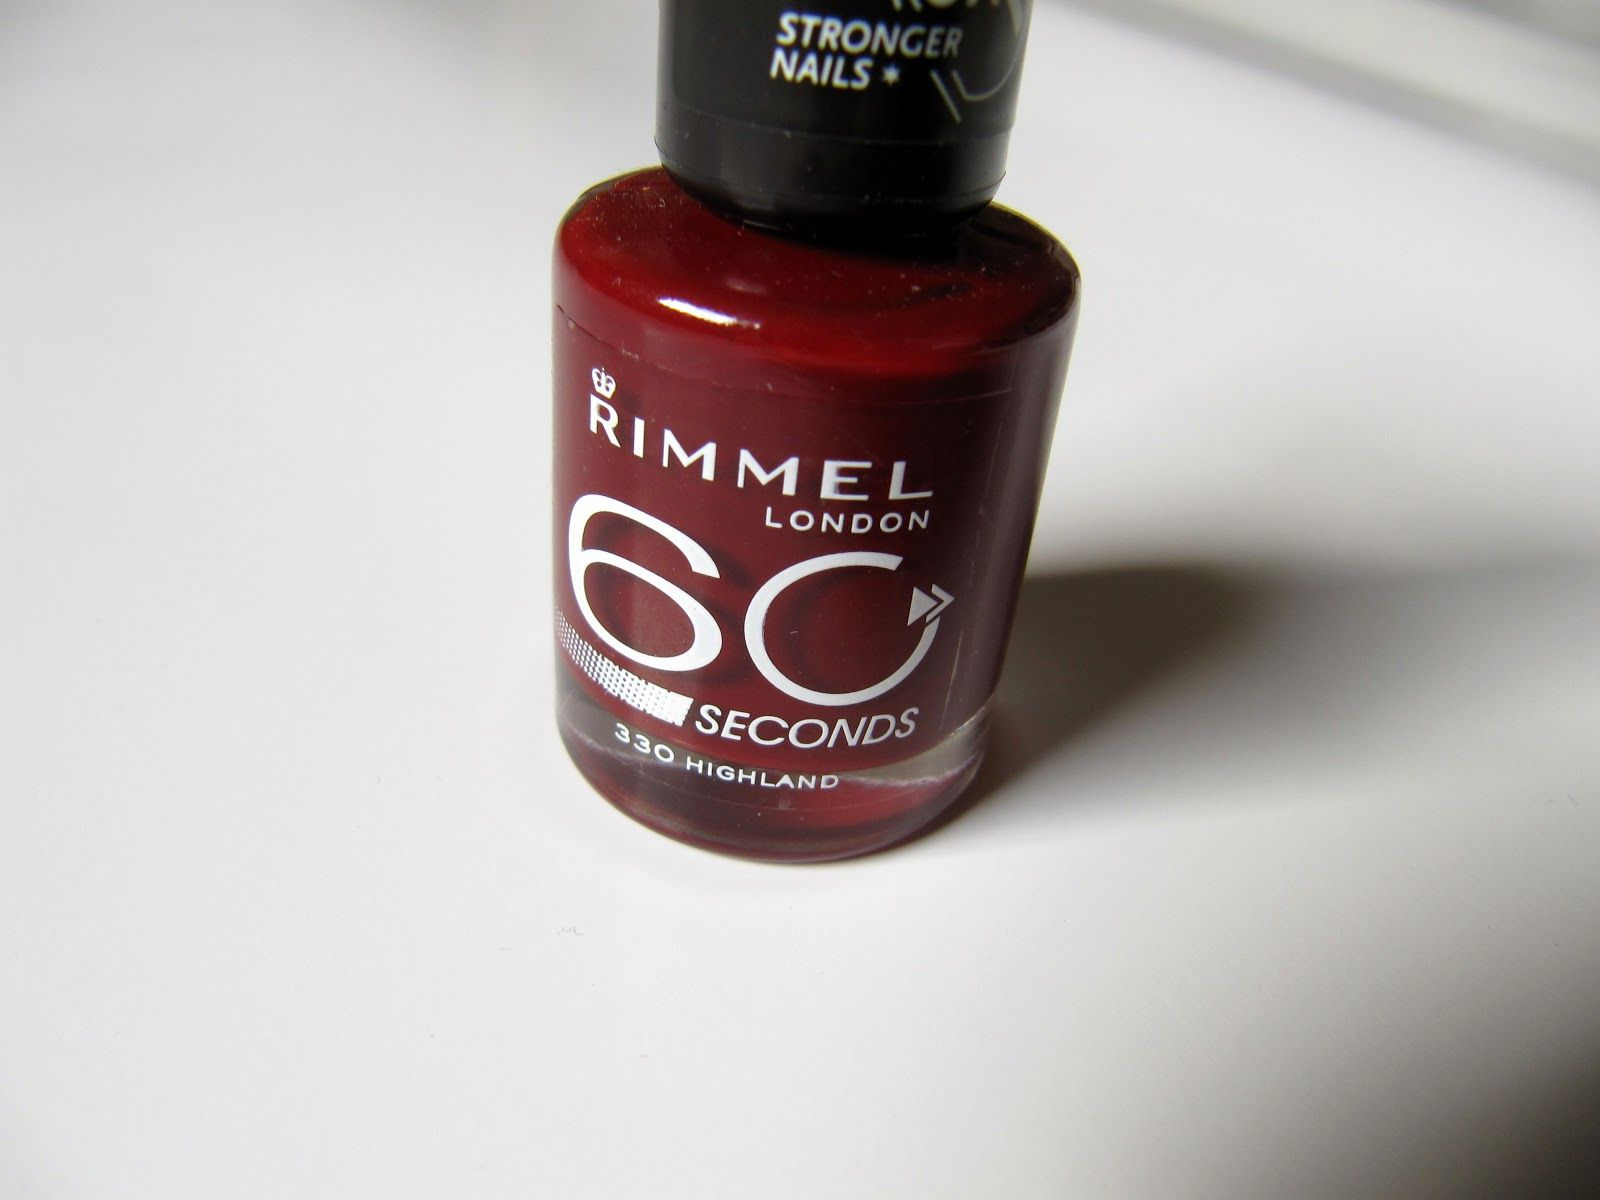 Rimmel London 60 seconds nail polish in shade 330 Highland | My Blog ...